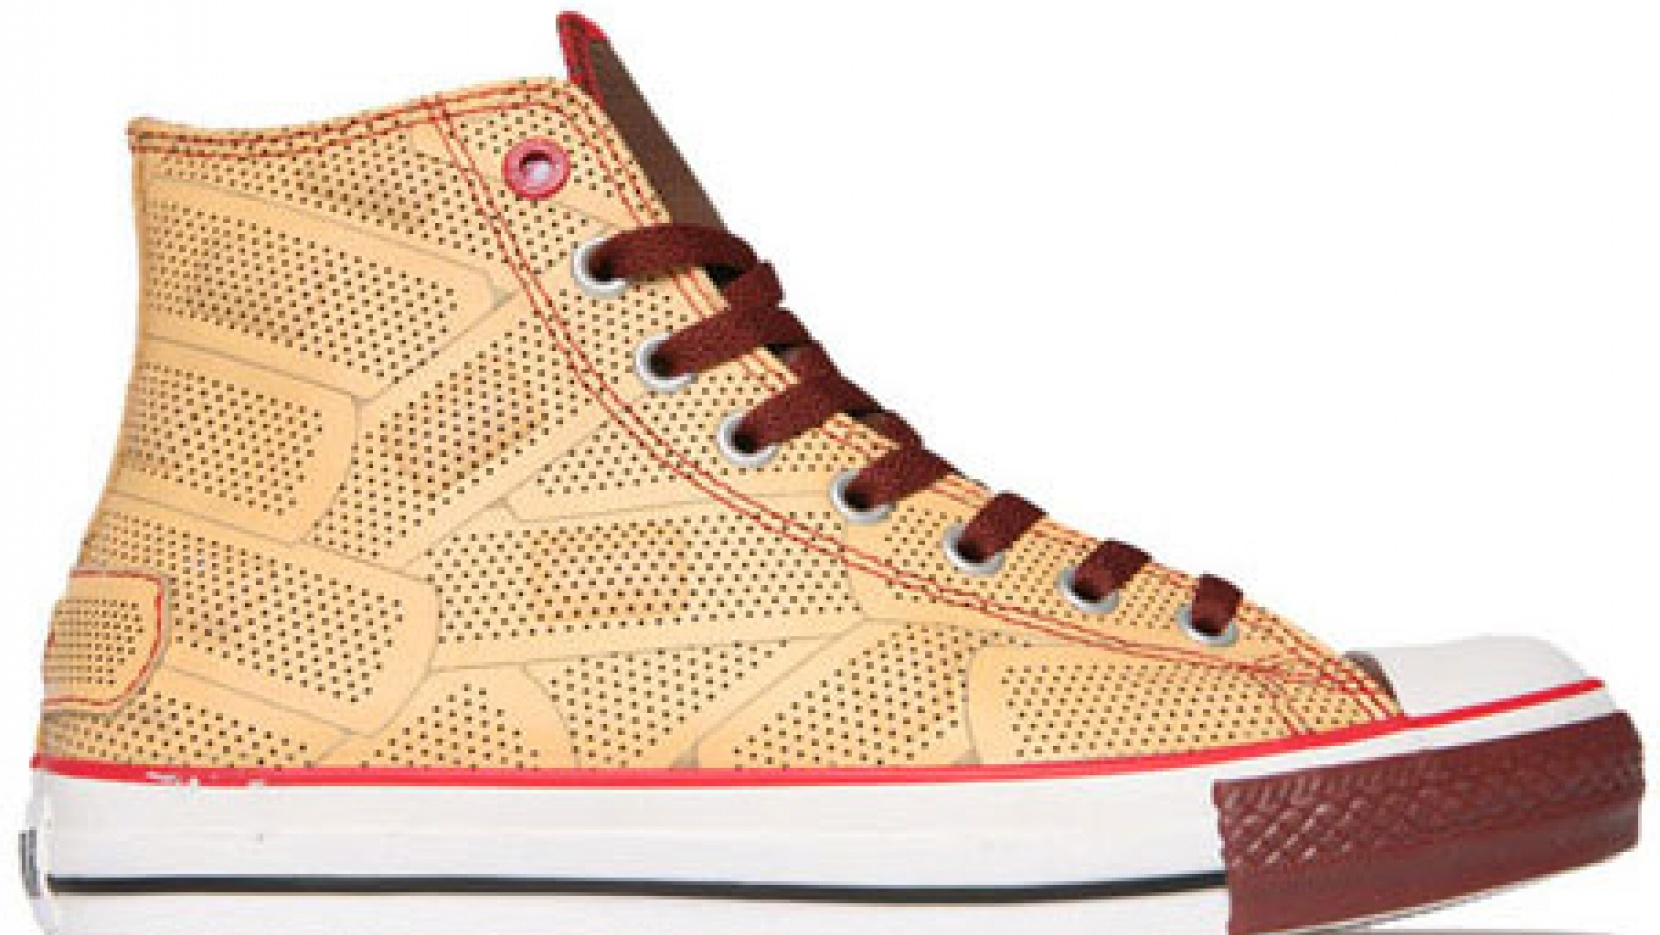 ebc4055ee2e The wounded Converse All stars by Doctor Romanelli